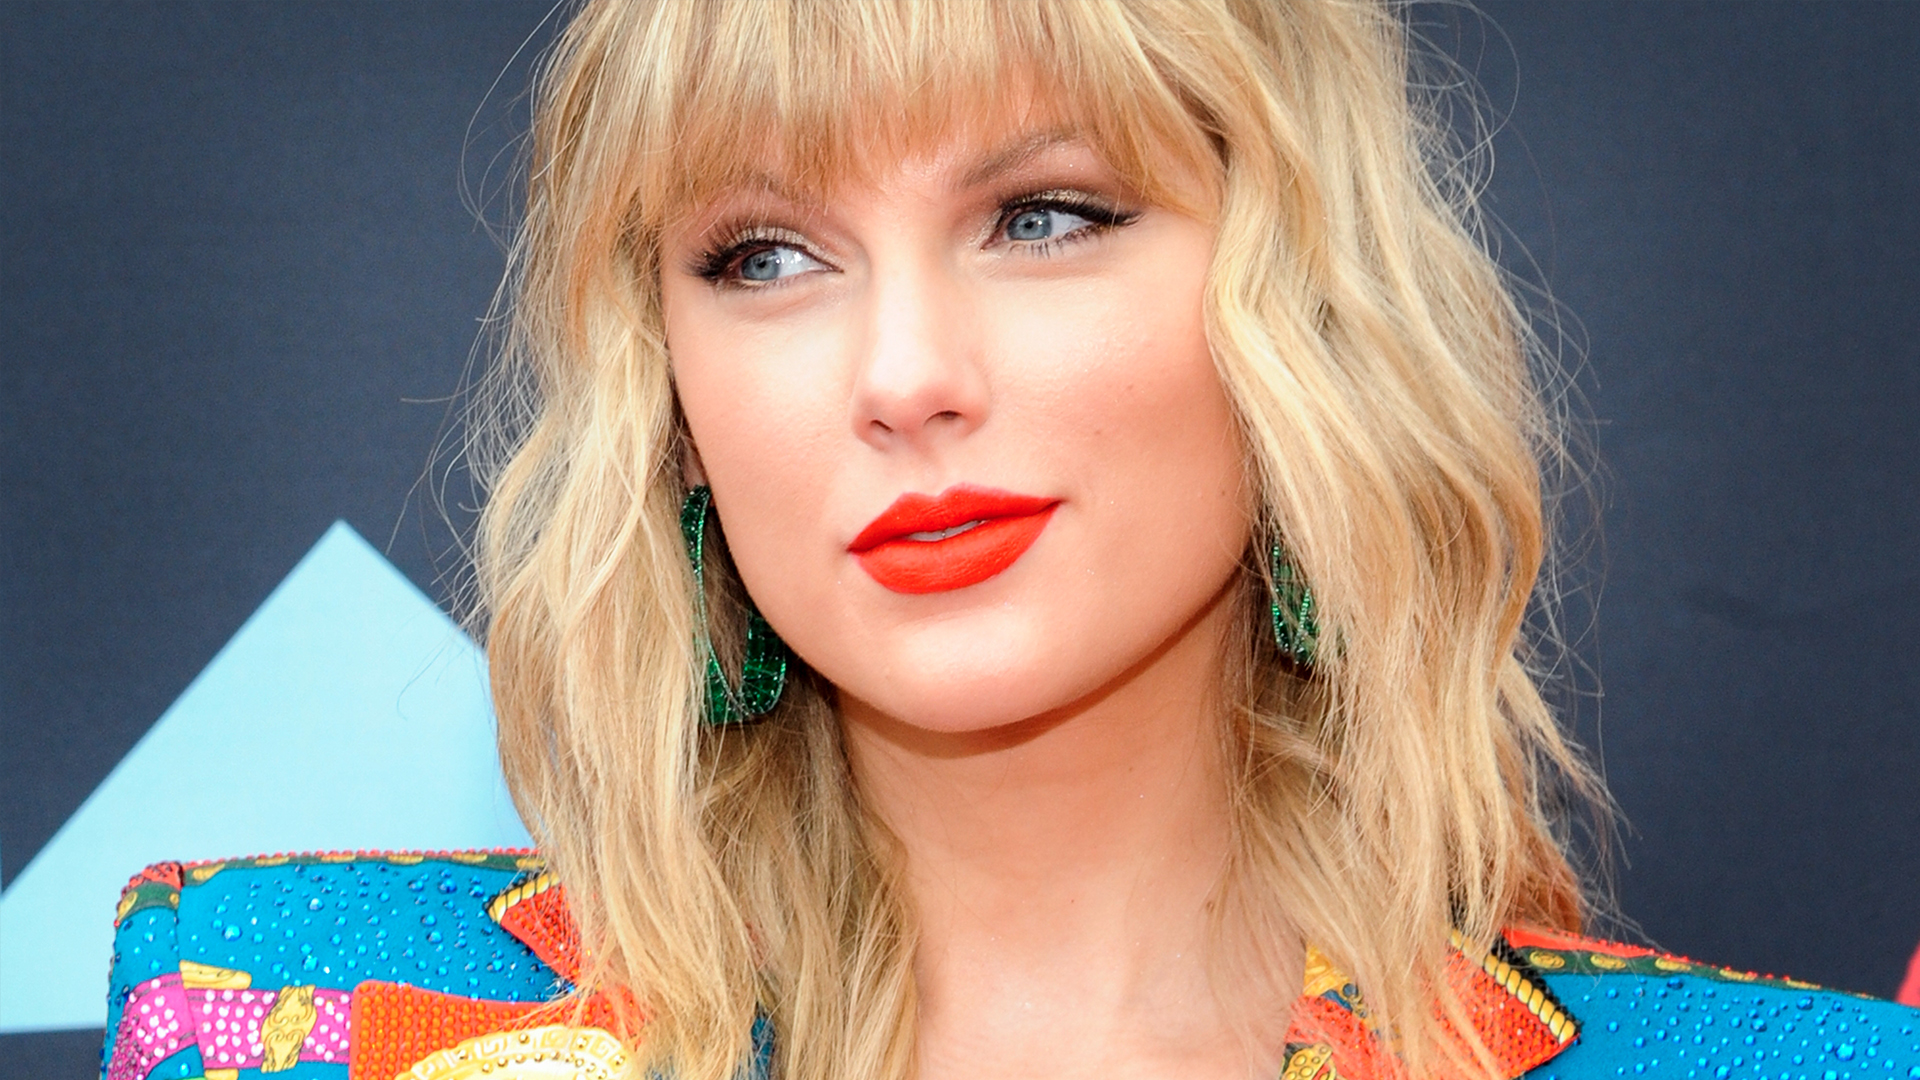 Hi, Taylor Swift's VMAs Outfit Has Her Looking Like a Hot Casino